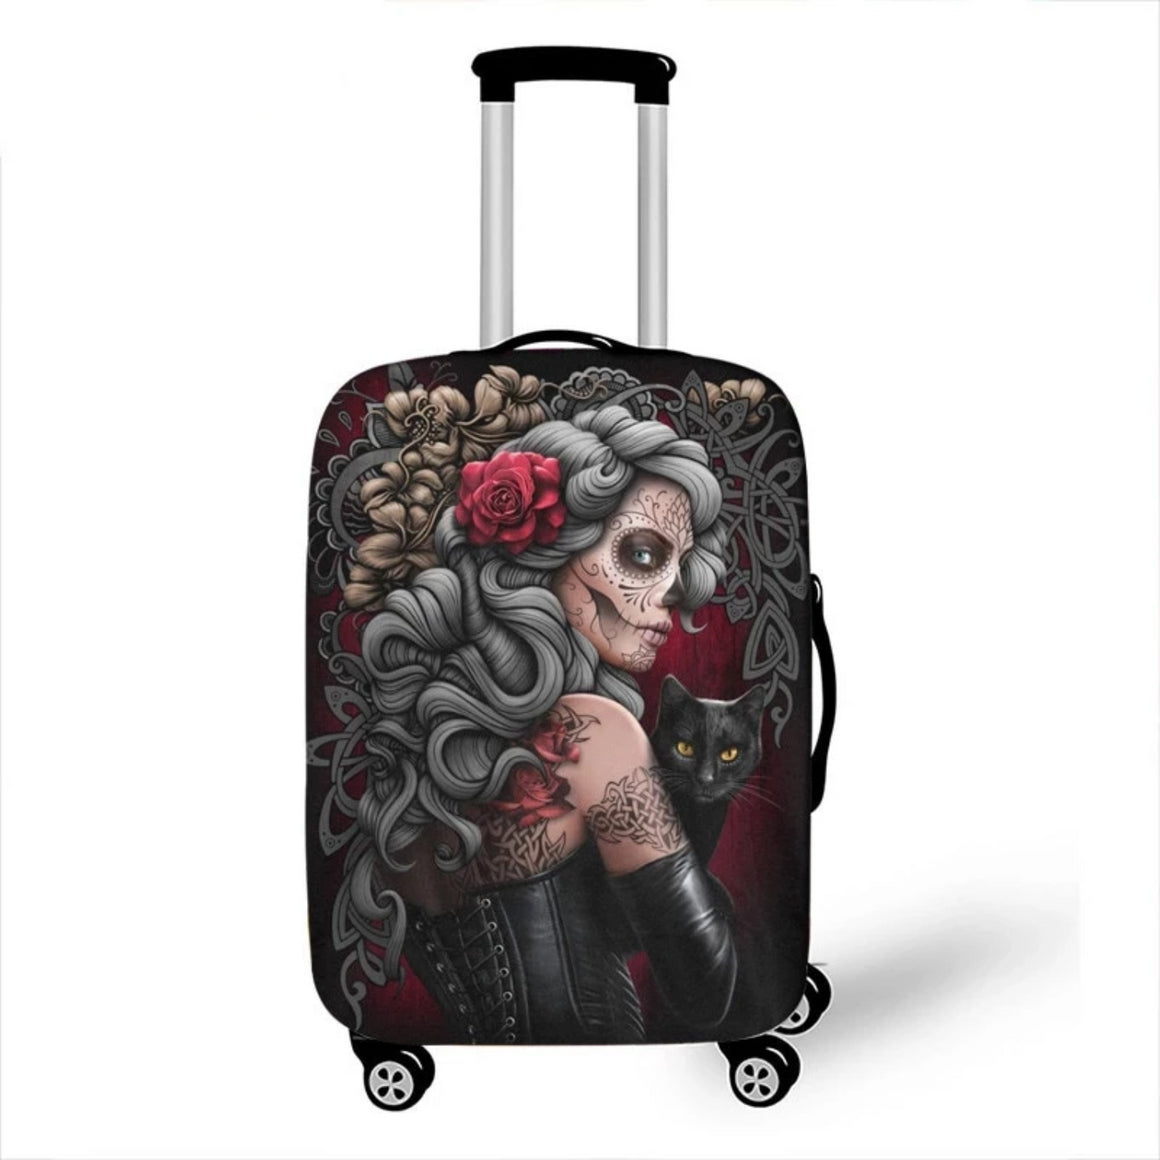 Dark Gothic Skull / Beauty Luggage Protective Cover Waterproof Elastic Suitcase Covers Travel Accessories Covers For 18-28 inch